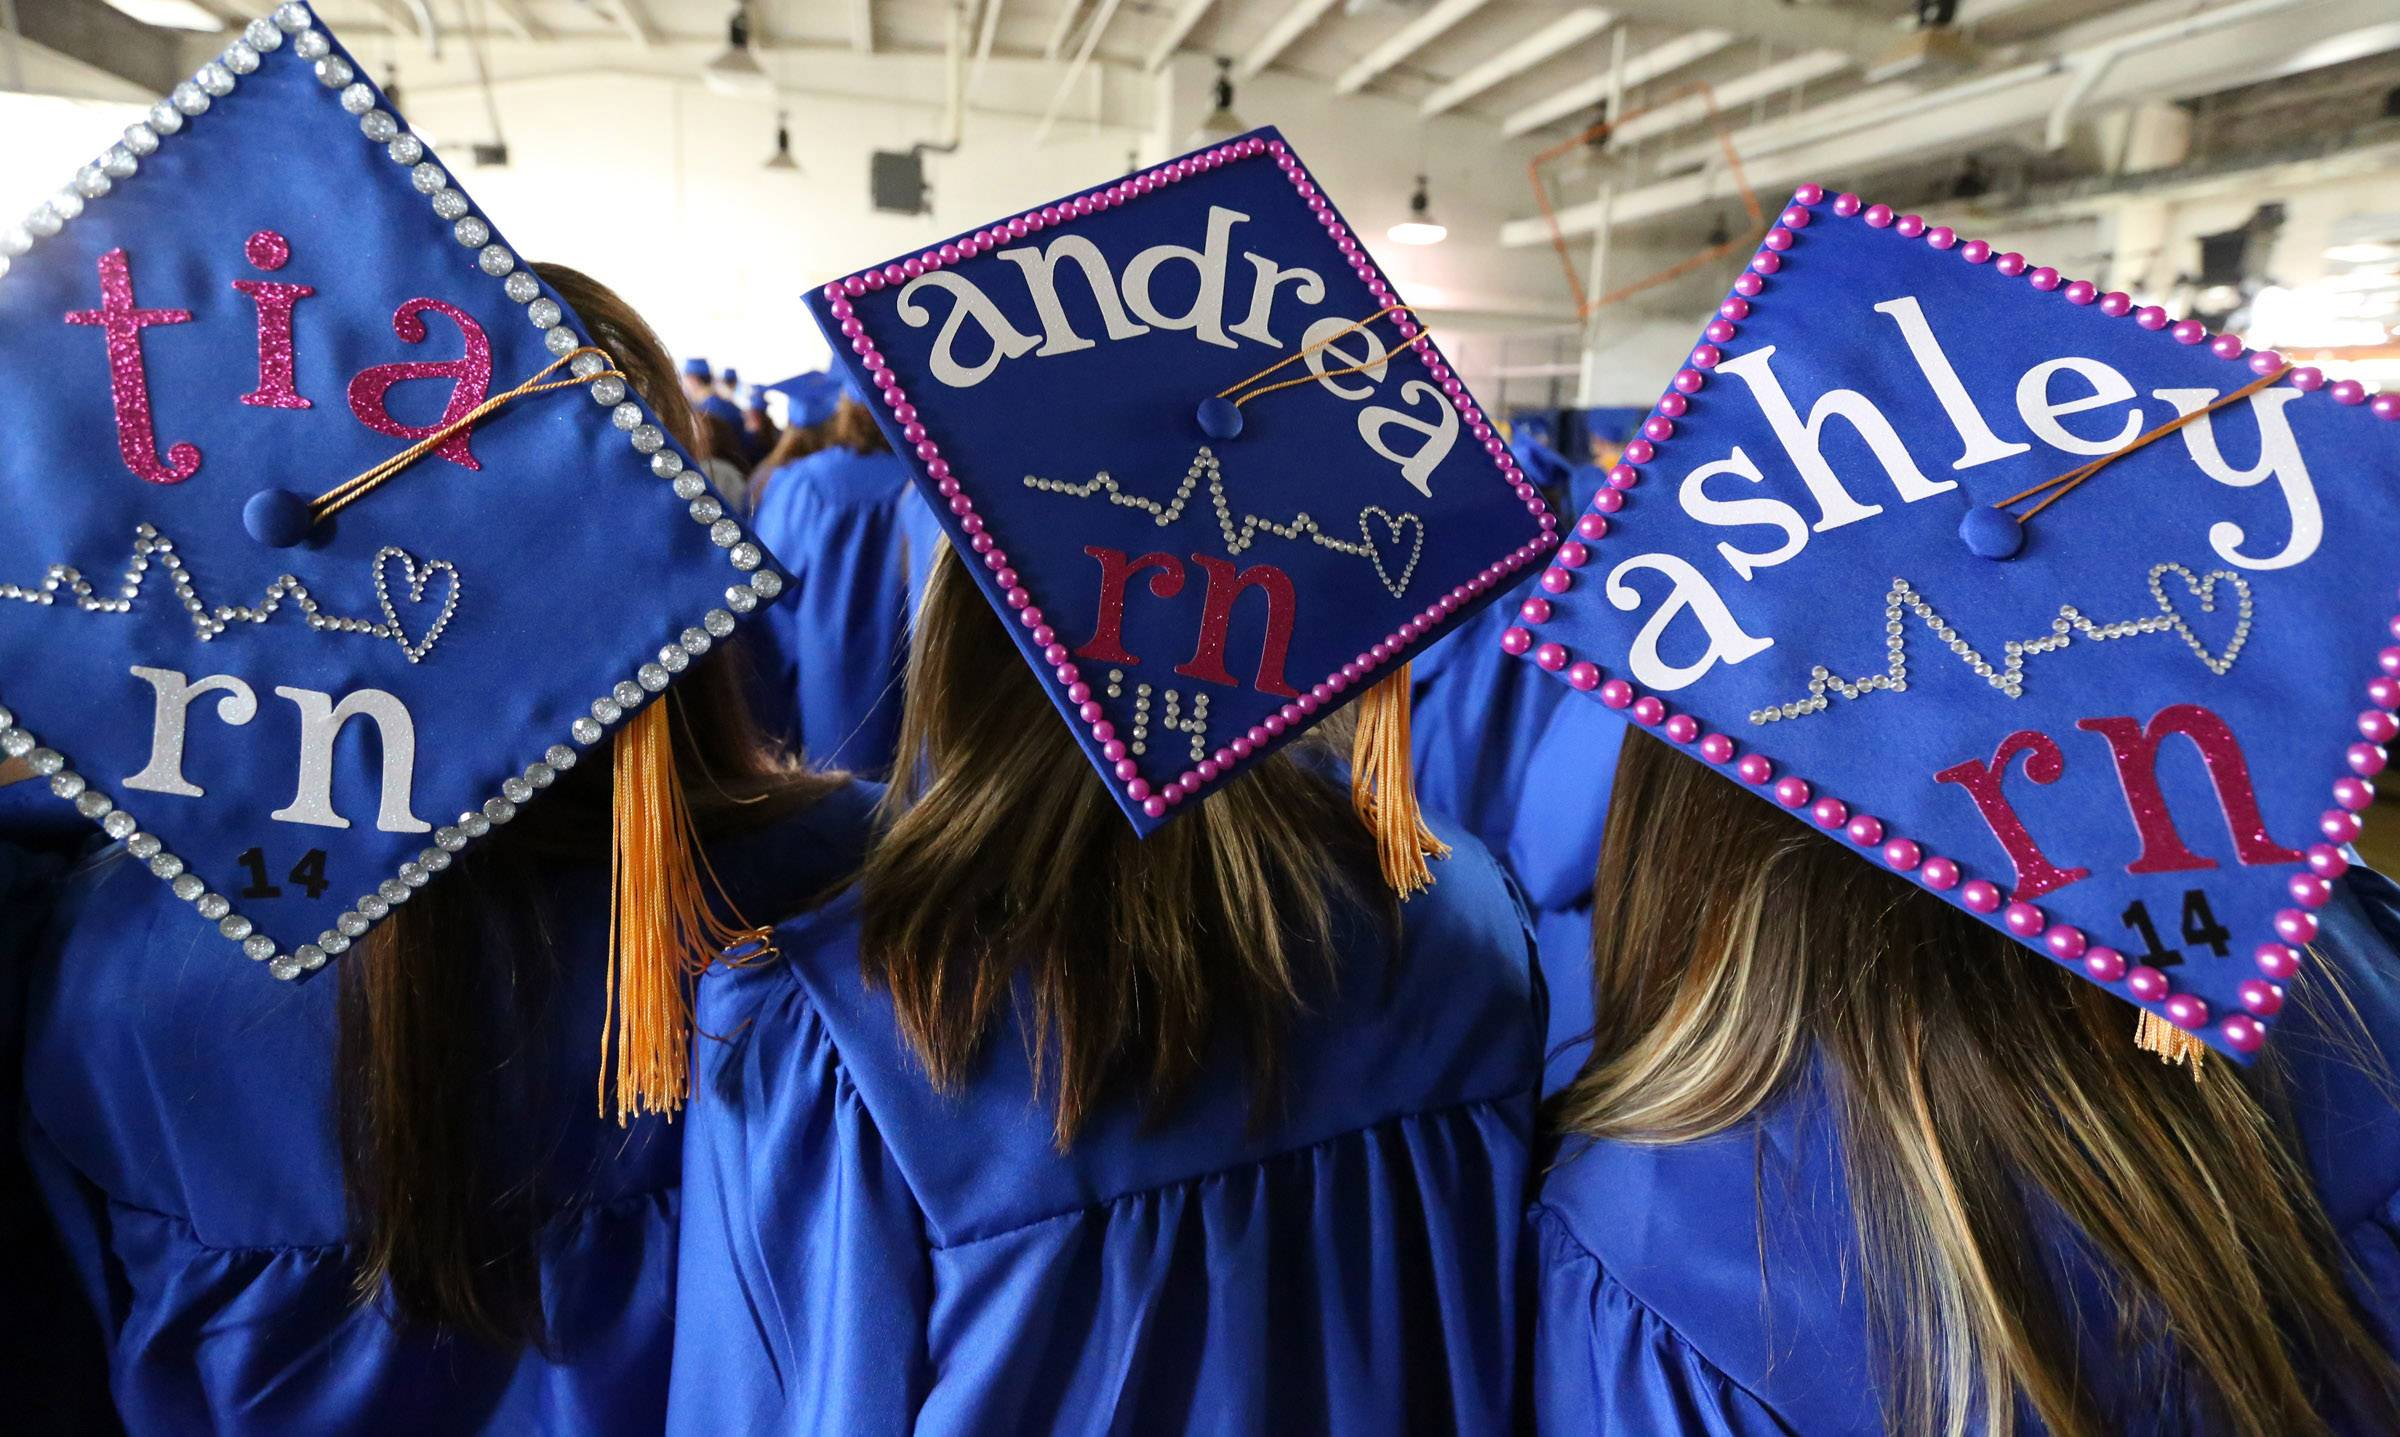 Tia Echterling of Antioch, left to right, Andrea Miculinich of Volo, and Ashley Besler of Lake Villa wait in line before College of Lake County's 45th commencement ceremony on Saturday in Grayslake.